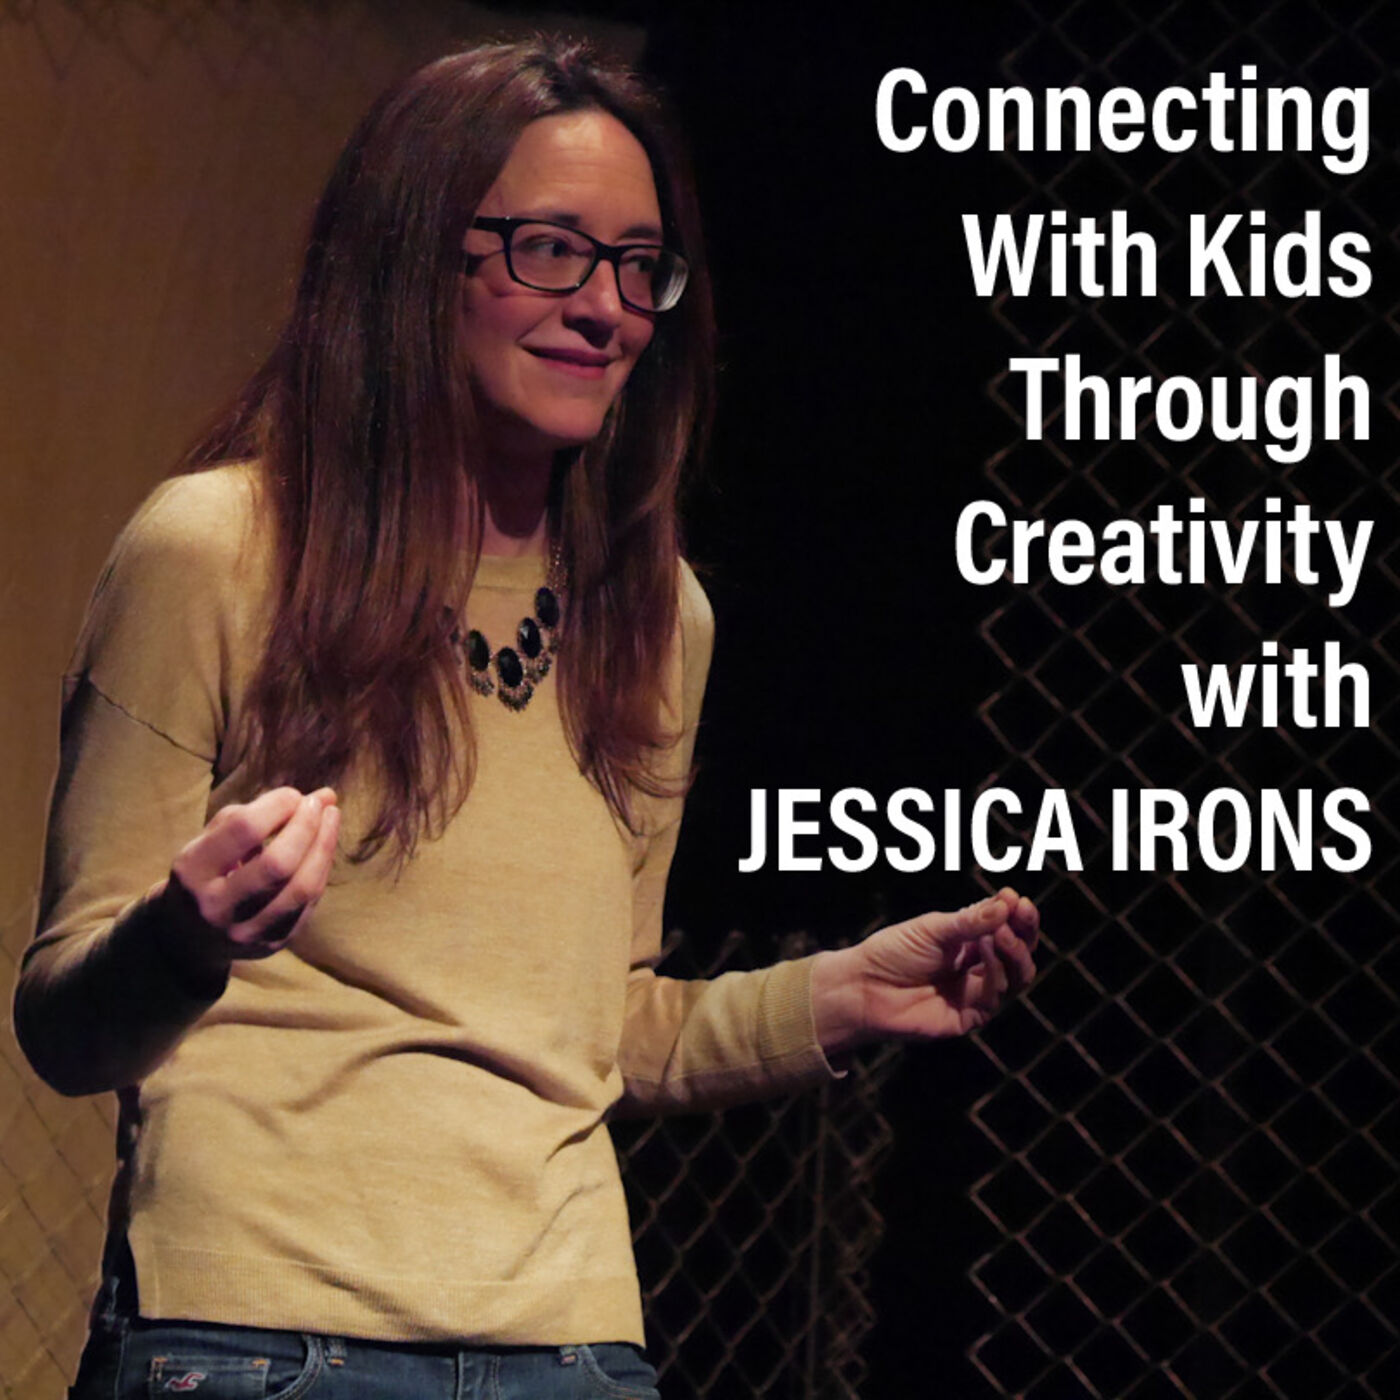 Connecting With Kids Through Creativity with Jessica Irons